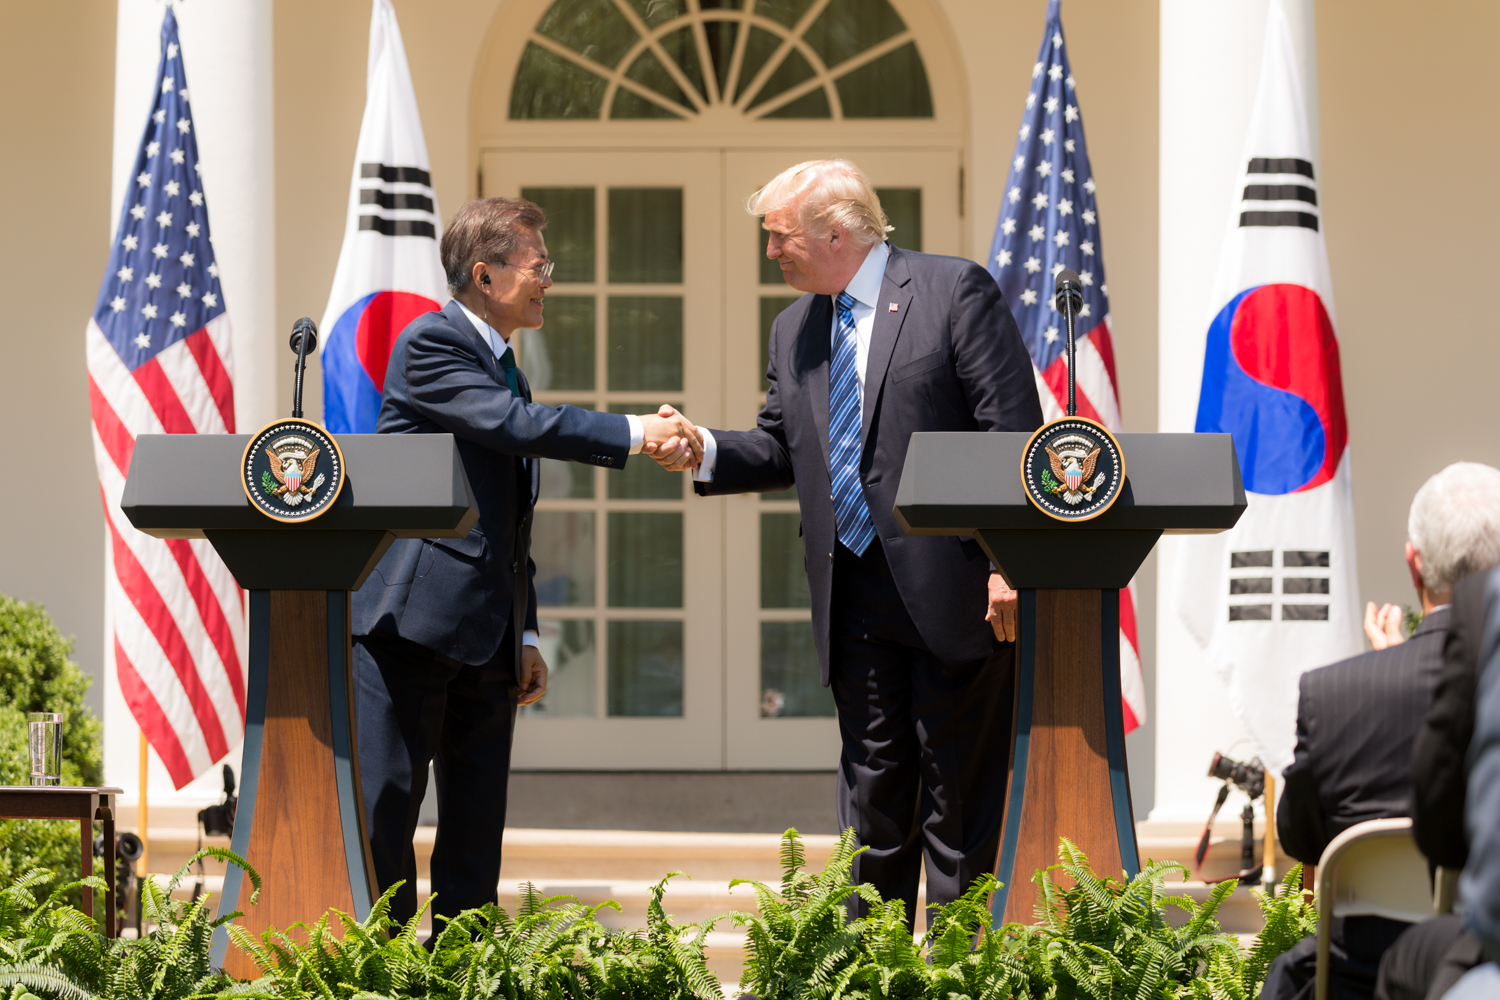 President Donald J. Trump welcomes President Moon Jae-in of the Republic of Korea to the White House